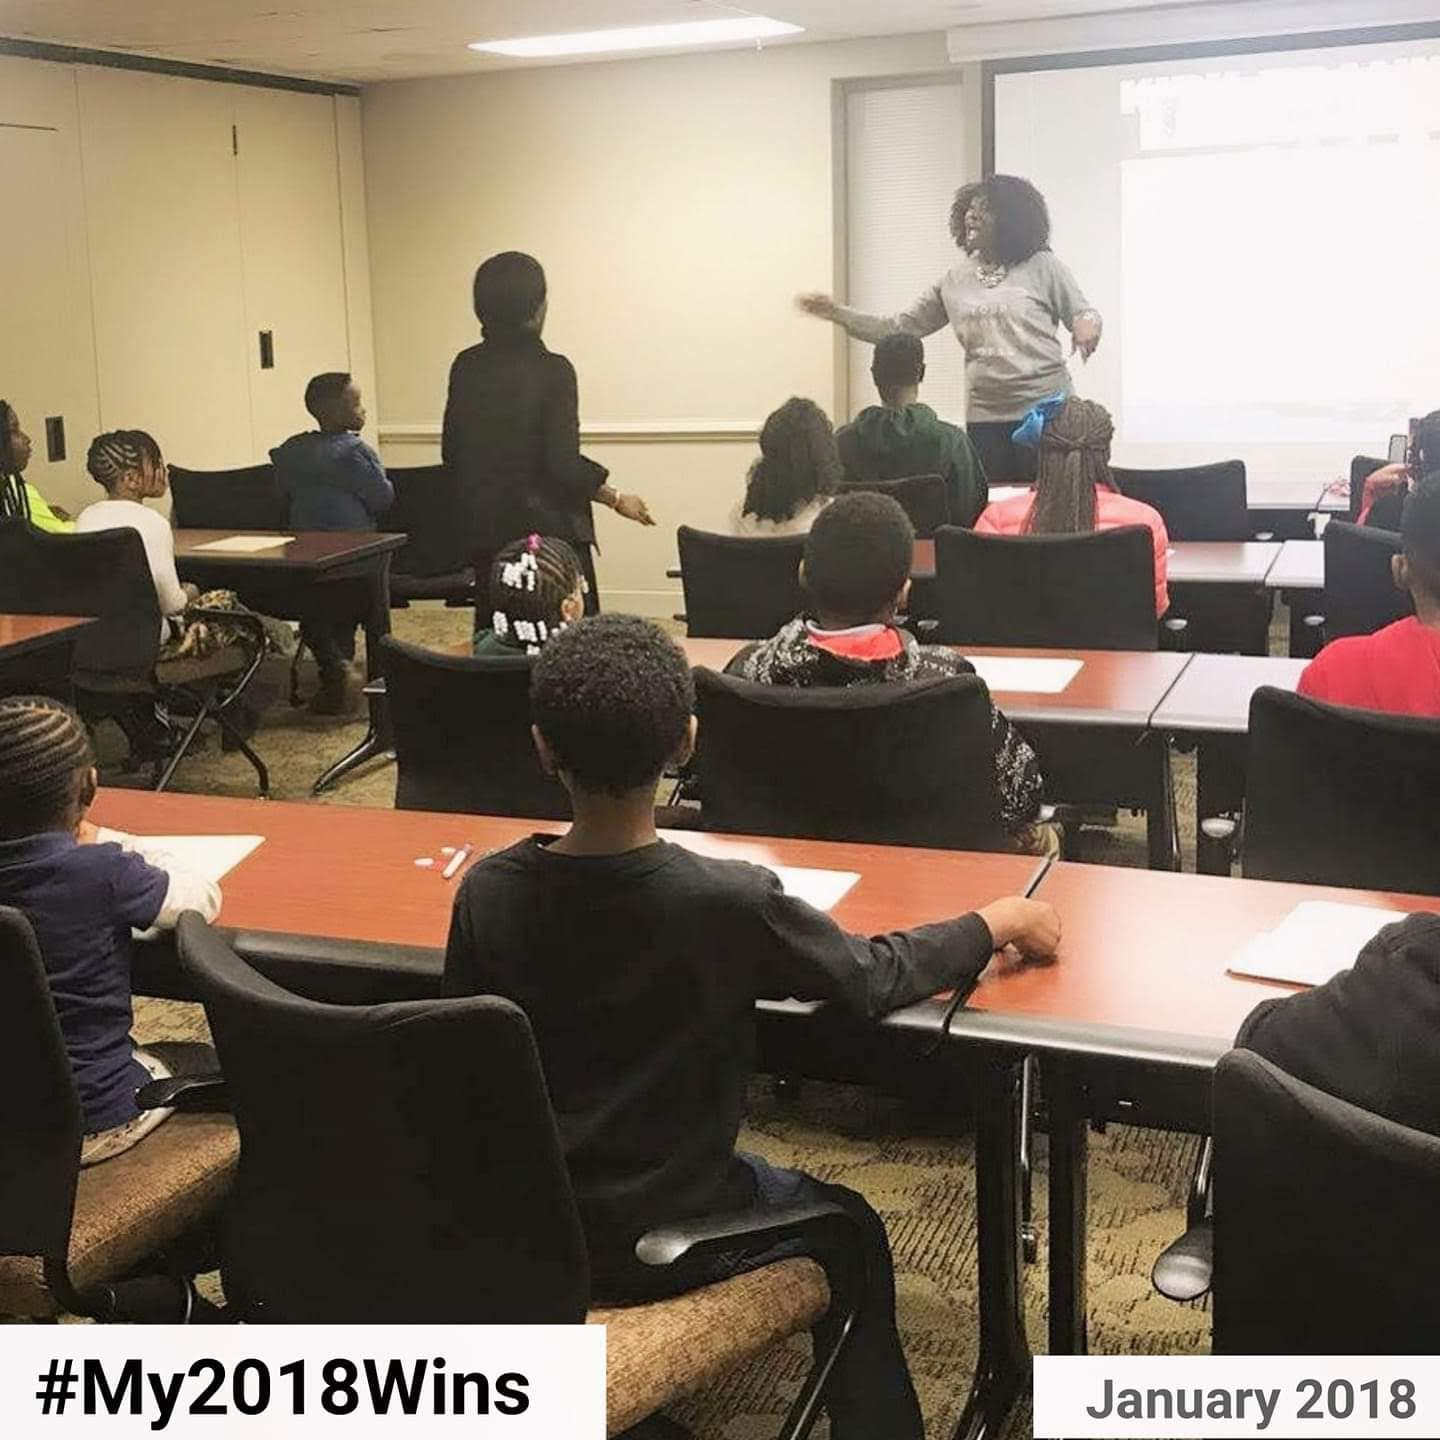 January 2018: I was invited by the Family Academy of First Baptist Church of Glenarden to teach these young beauties on confidence and a positive self image. I was so grateful for the opportunity because I adore children.